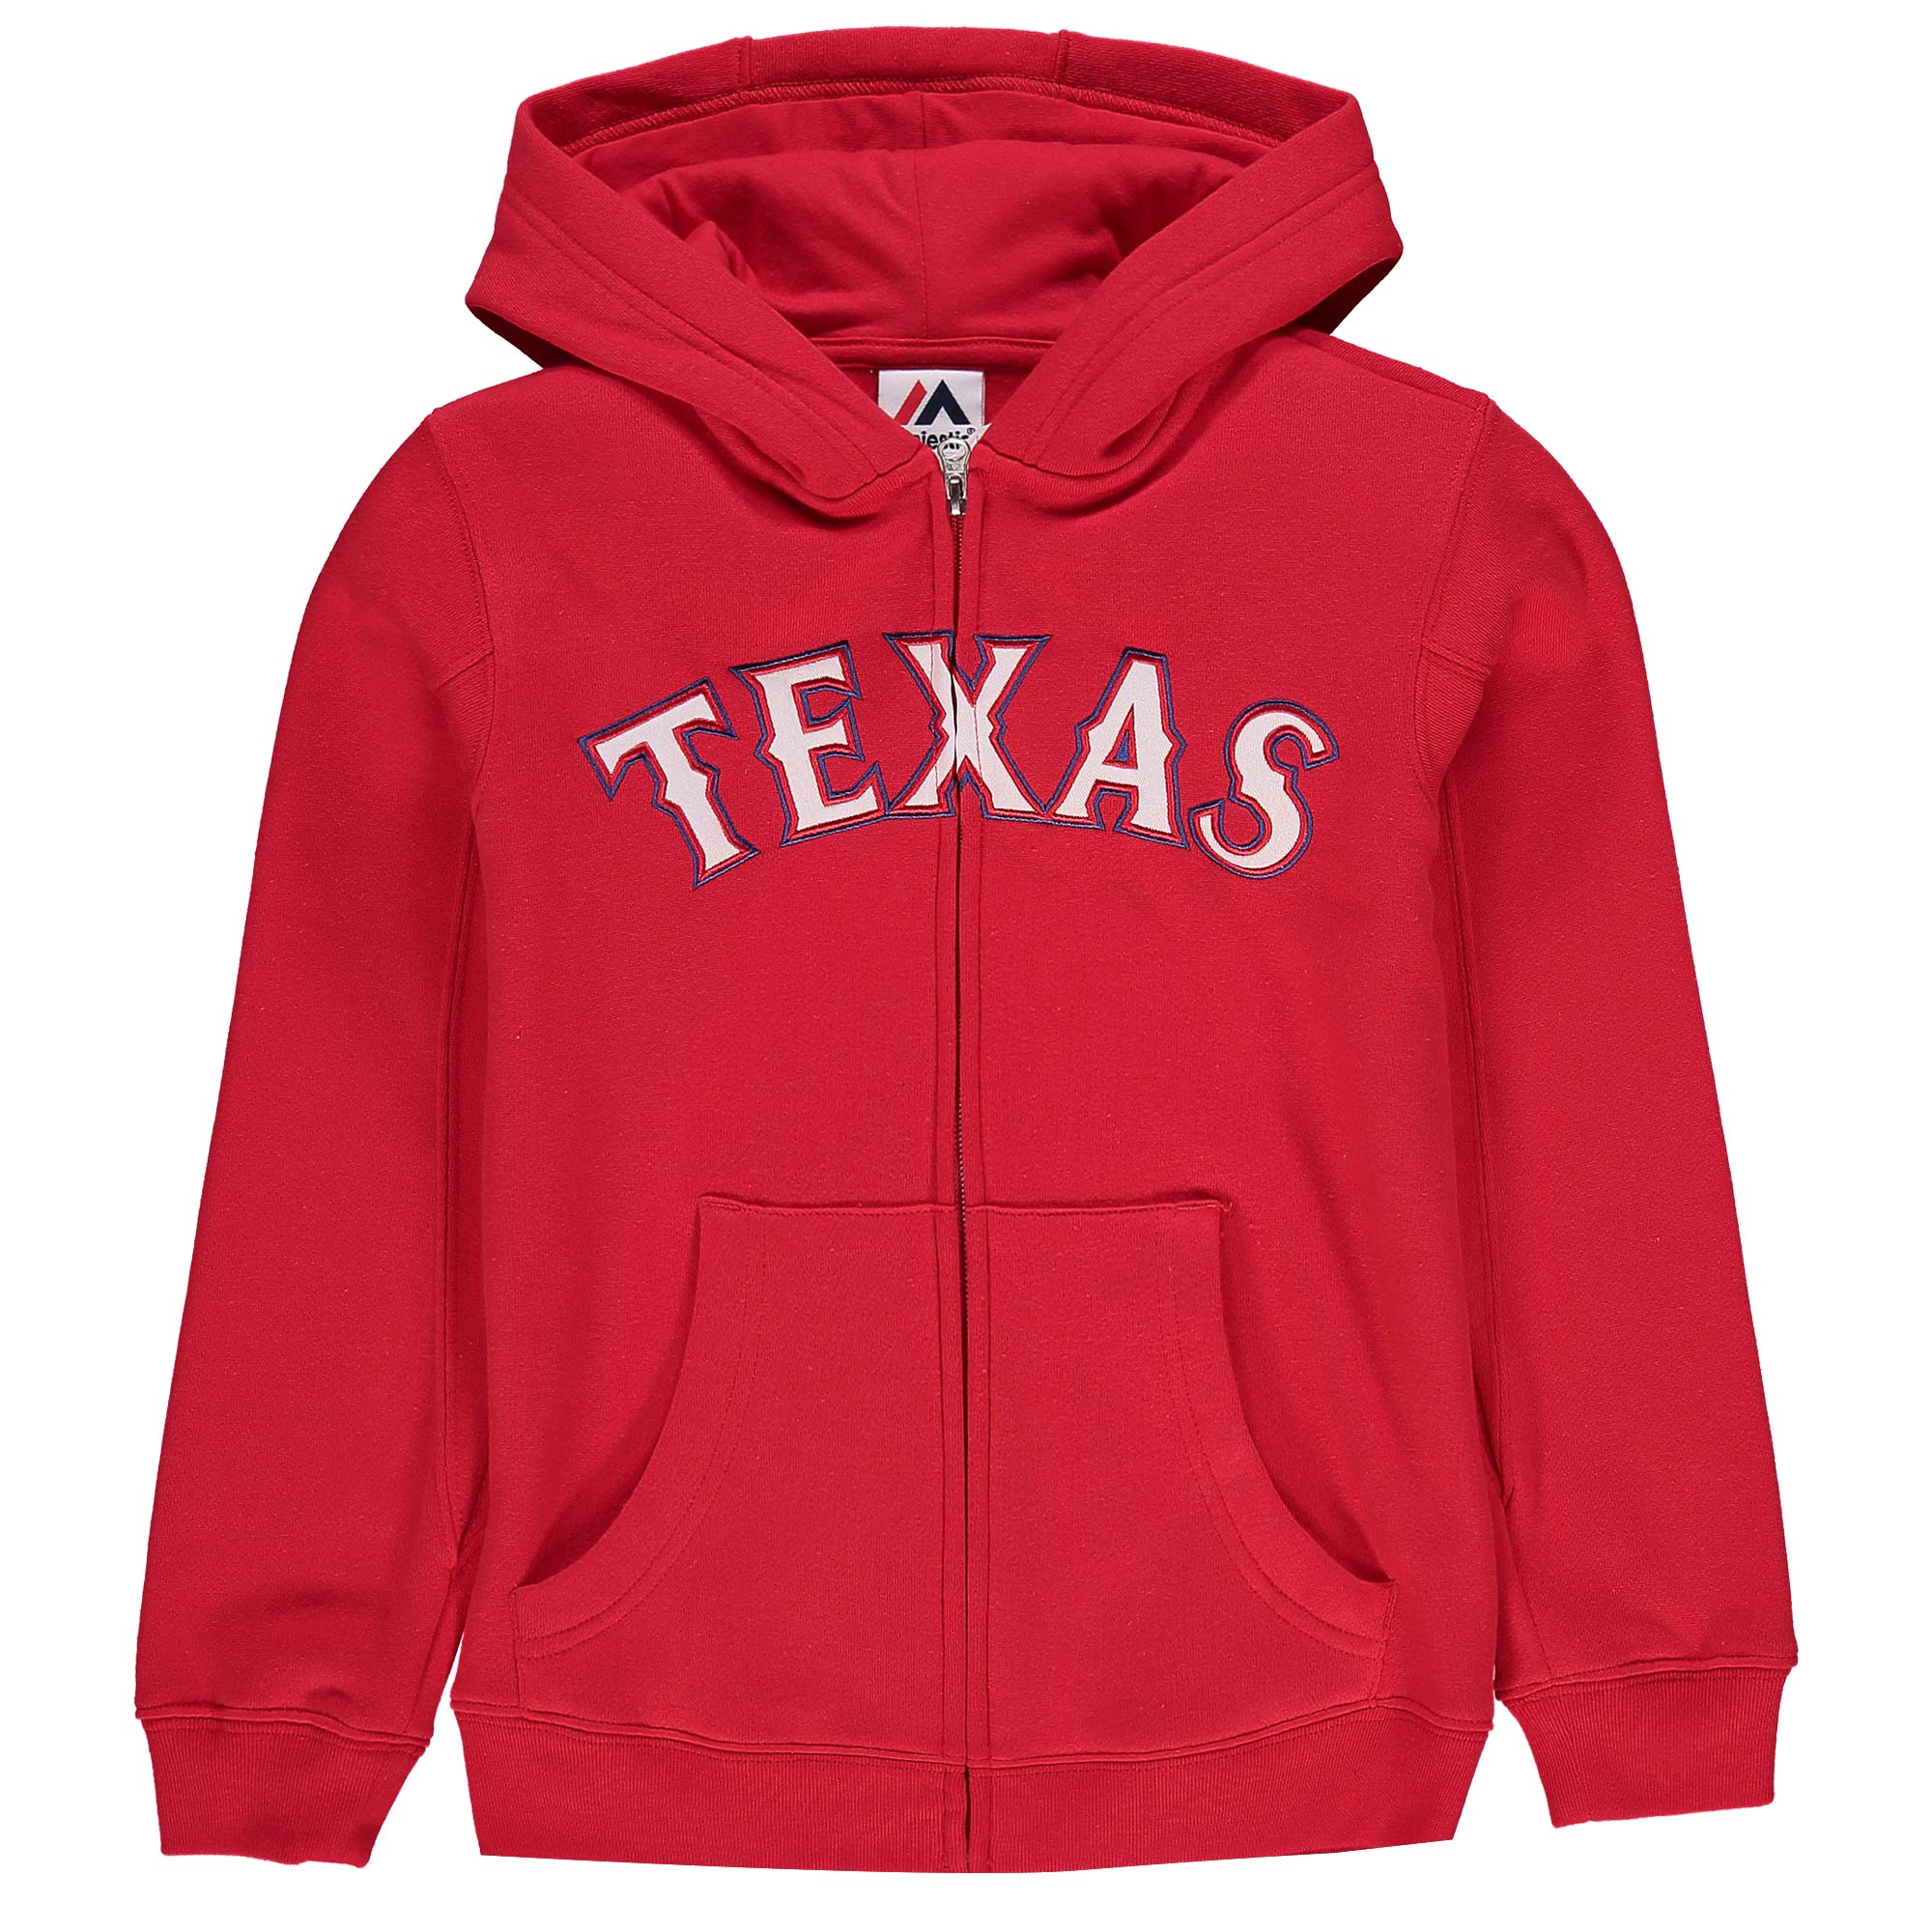 Texas Rangers Majestic Youth Team Wordmark Full-Zip Hoodie - Red